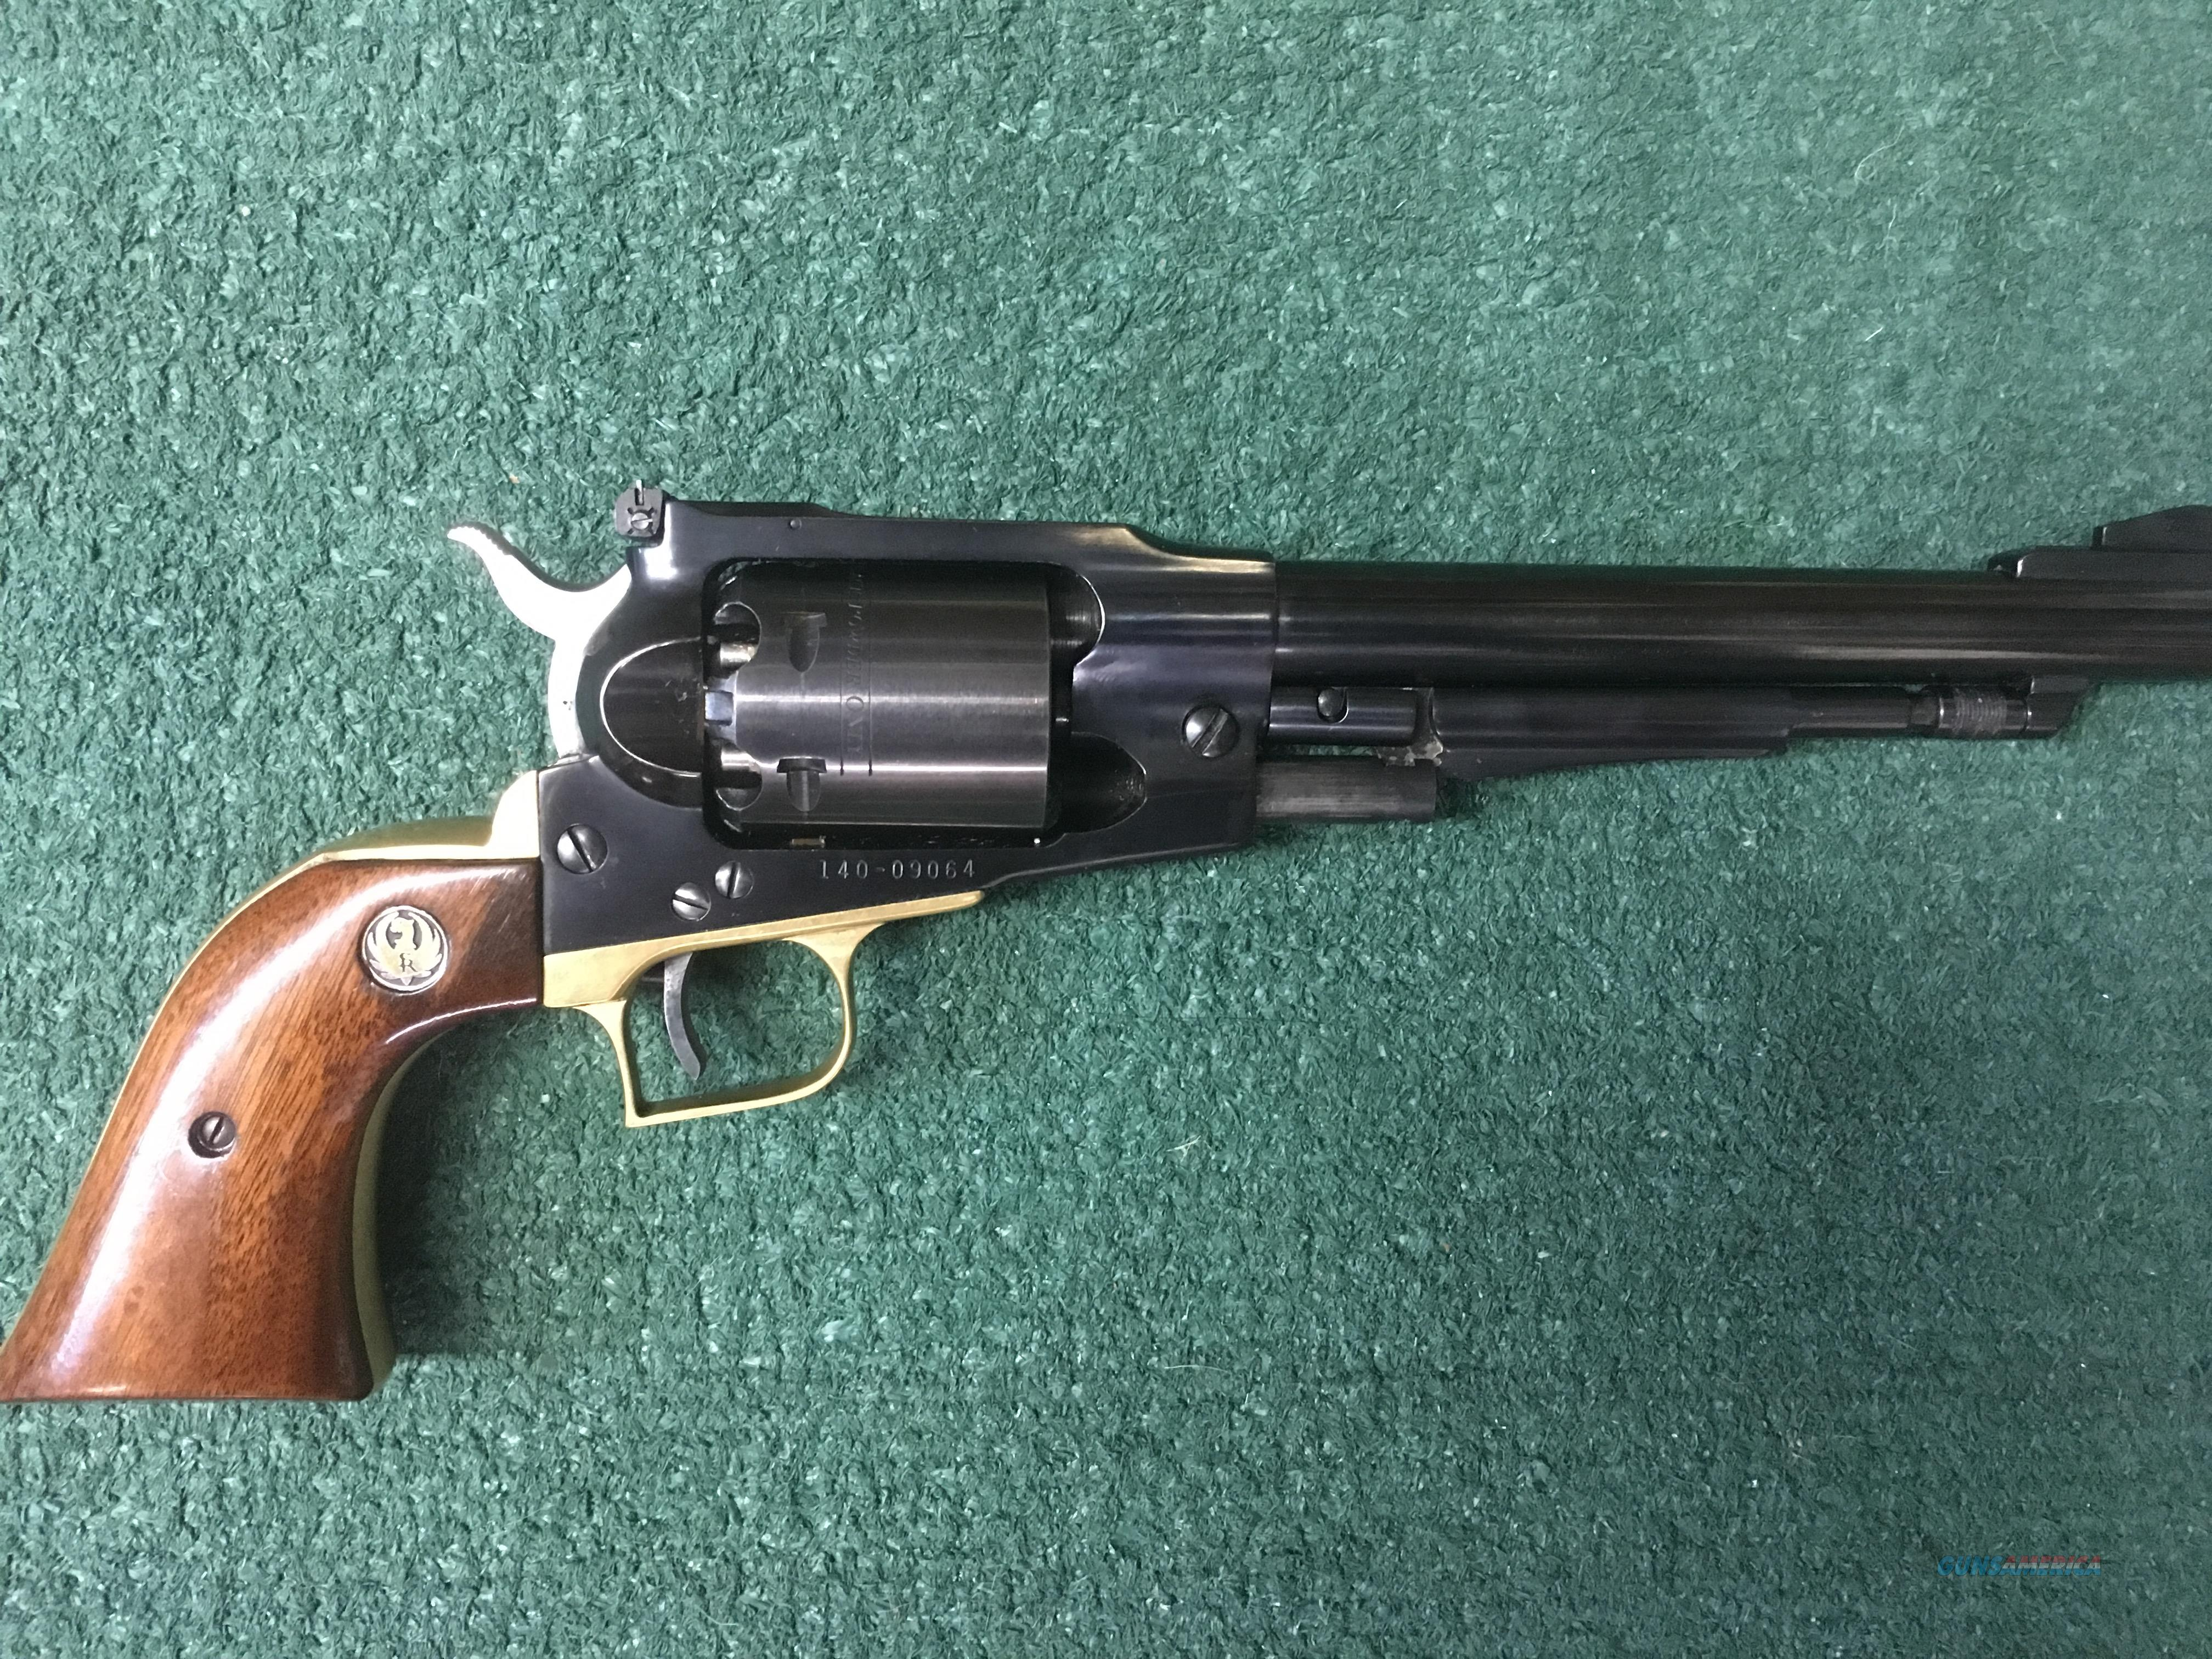 Ruger Old Army .44 Caliber RARE!! Brass Trigger Guard and Back Strap Black Powder 6 shot Revolver  Guns > Pistols > Ruger Cap & Ball Revolvers